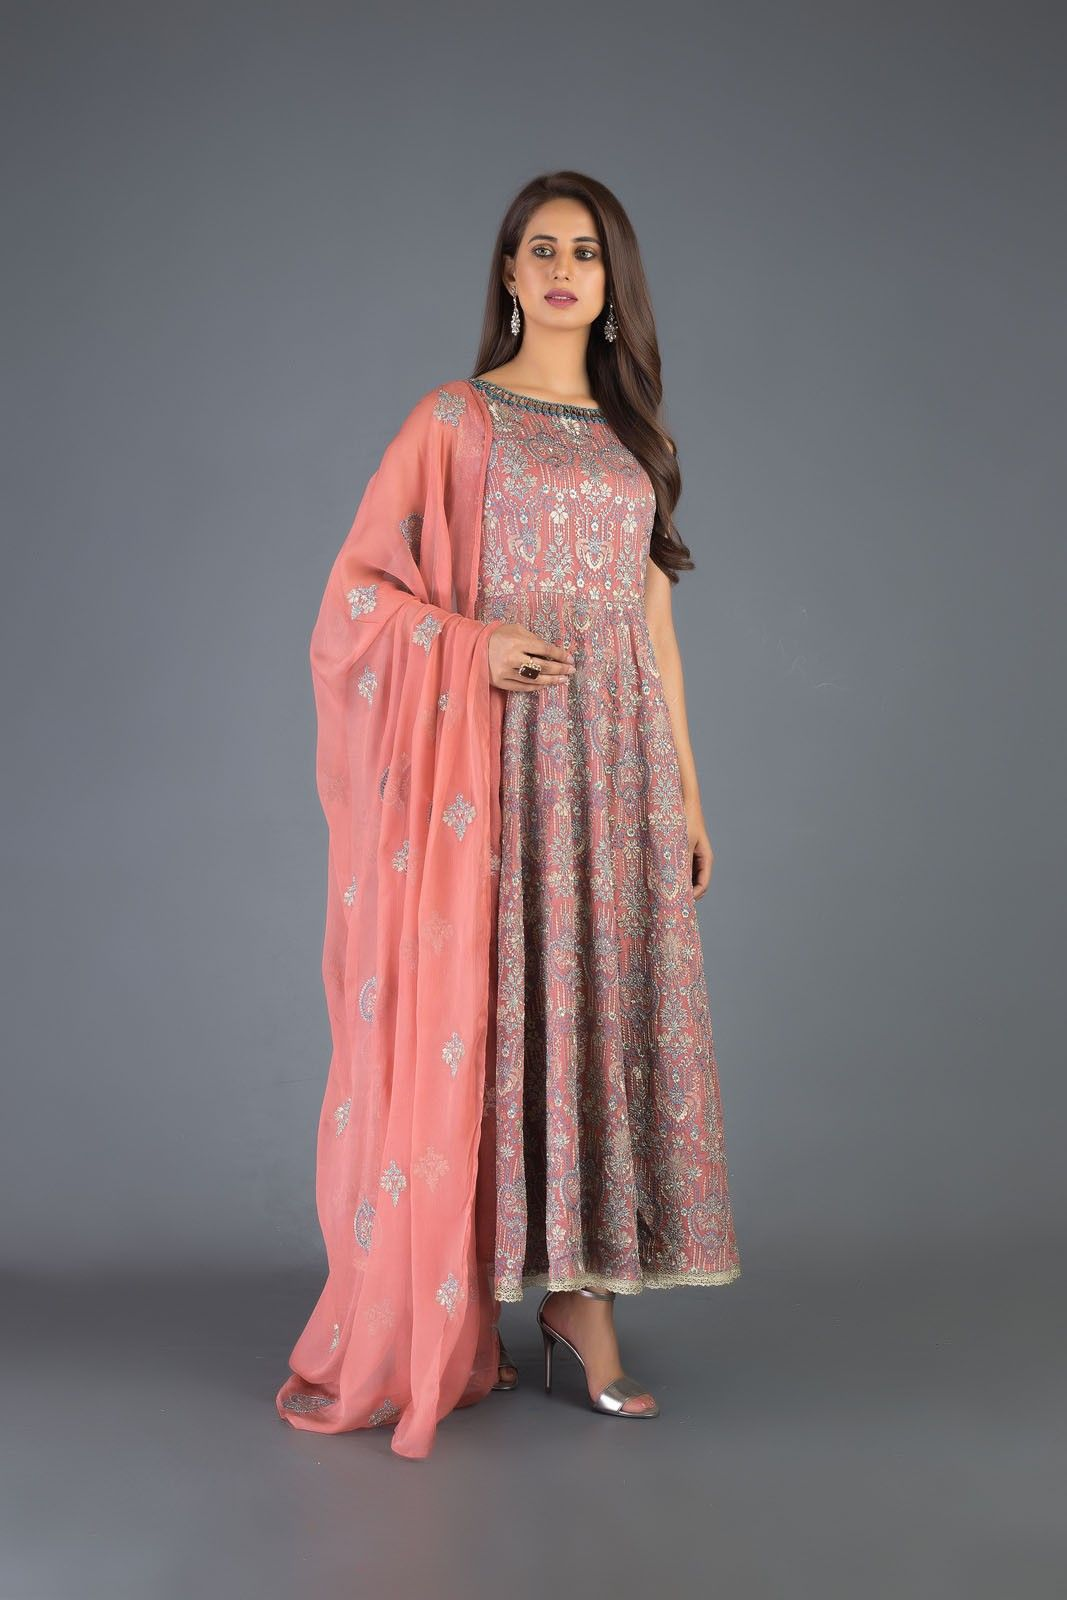 Bareeze Luxury Winter Embroidered Dresses Shawls Designs 2020 in